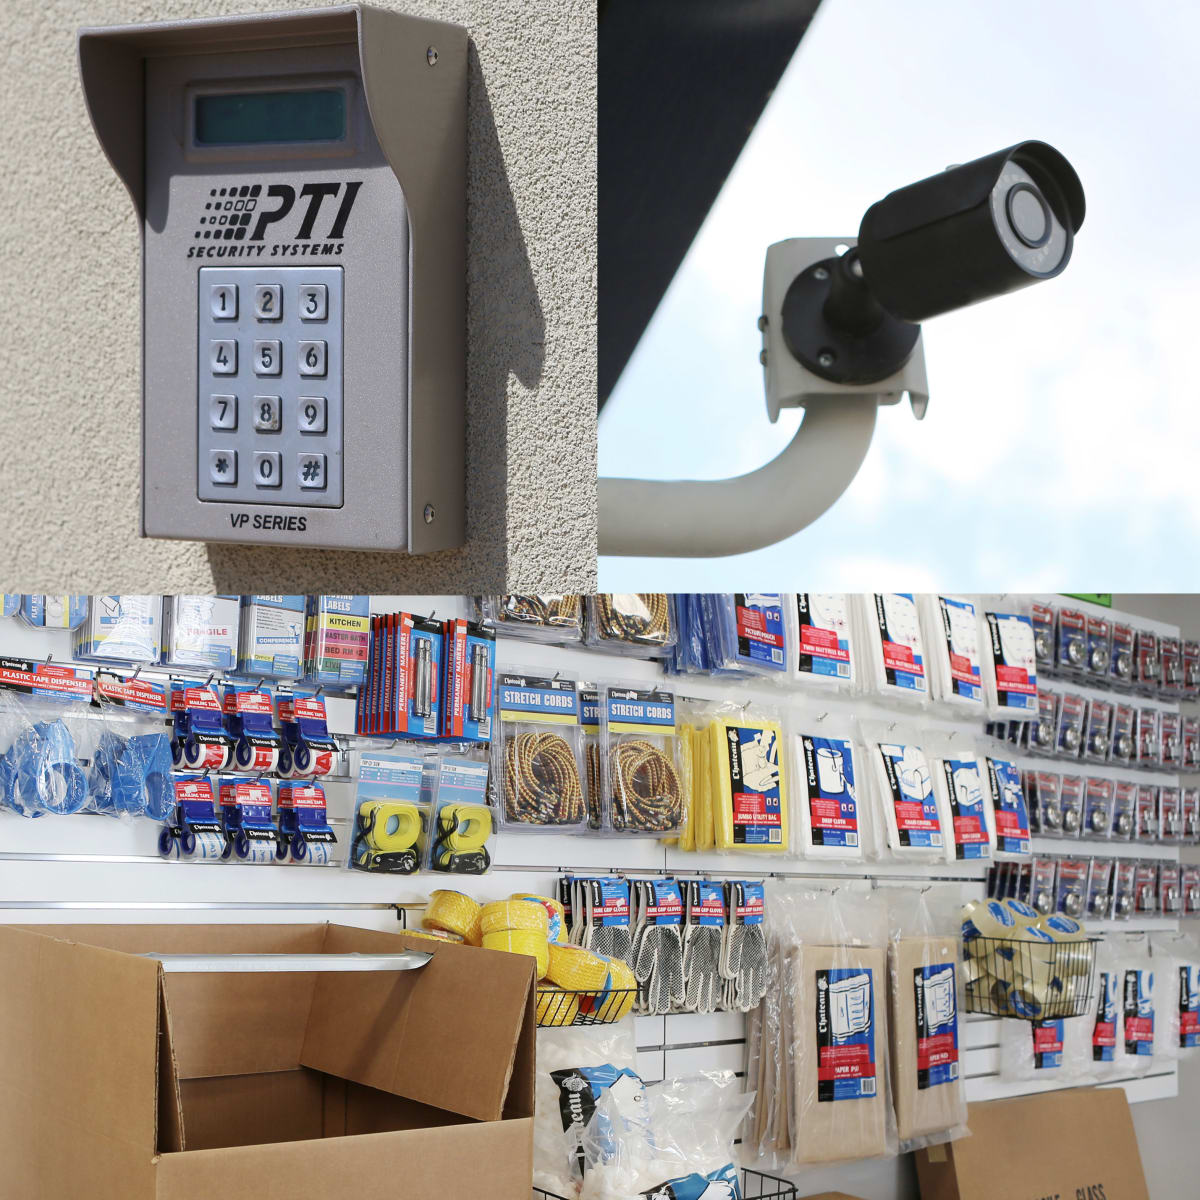 We provide 24 hour security monitoring and sell various moving and packing supplies at StoreSmart Self-Storage in Naples, Florida